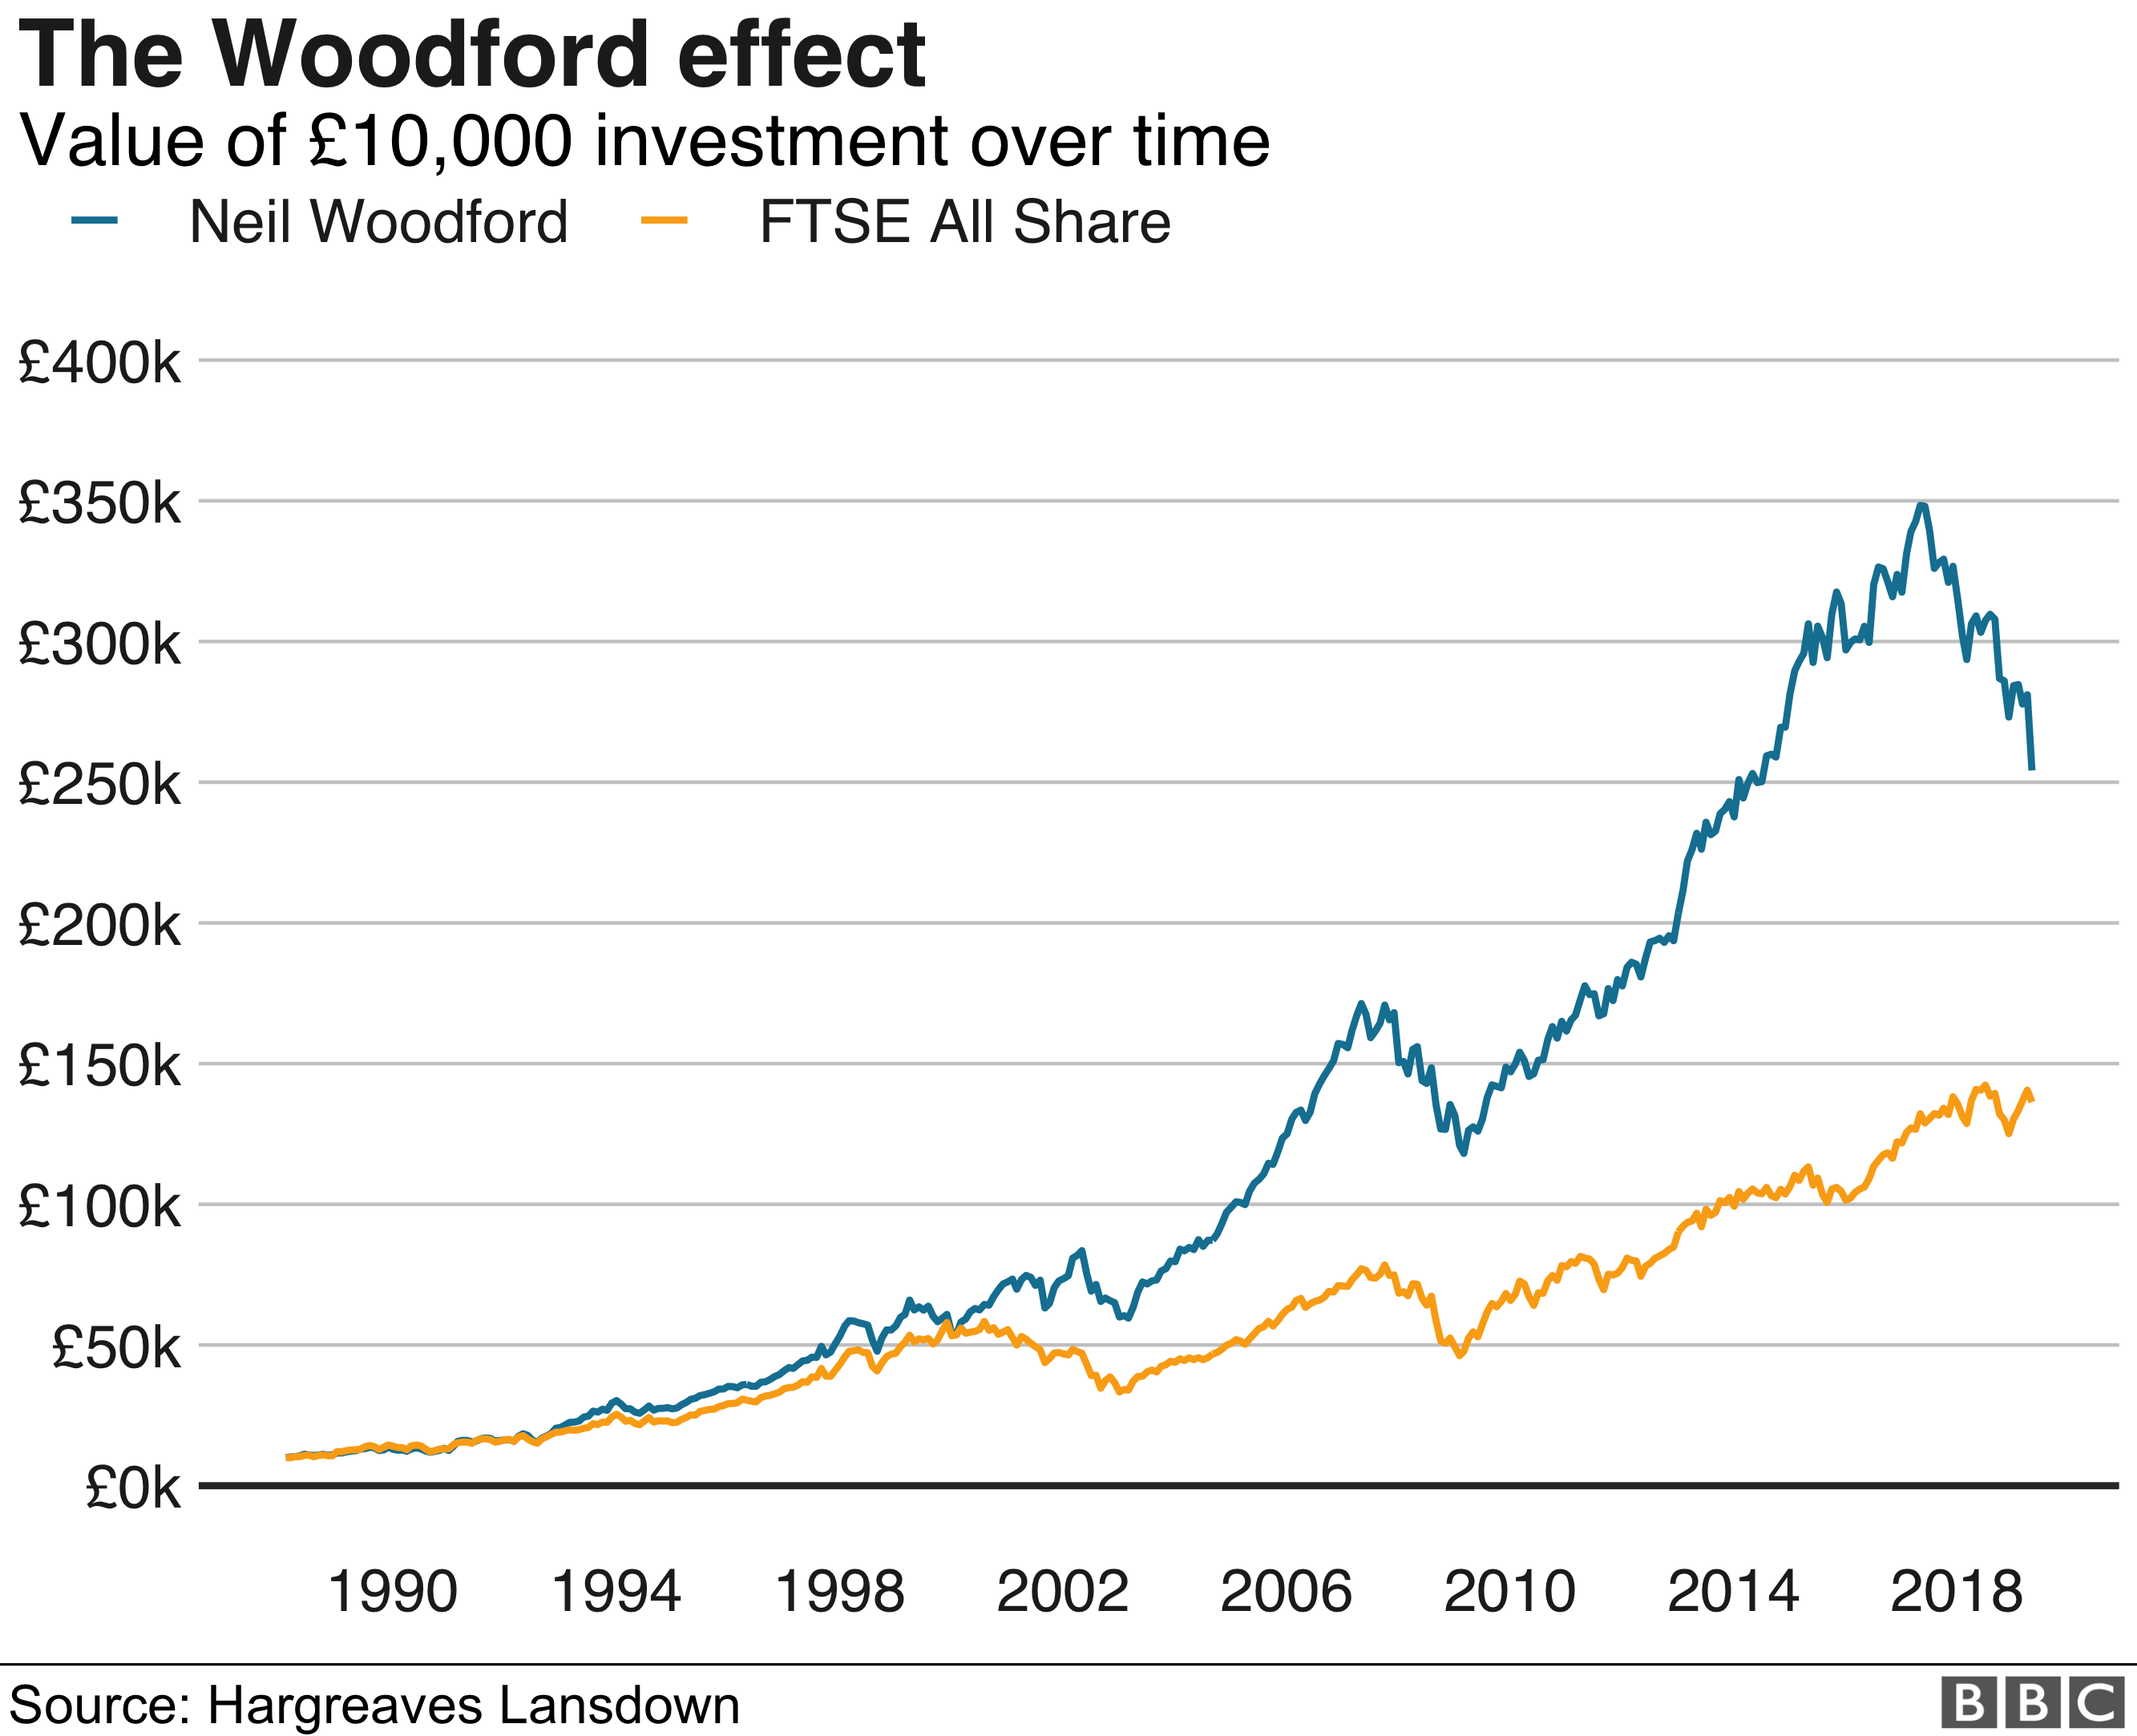 Woodford performance graph